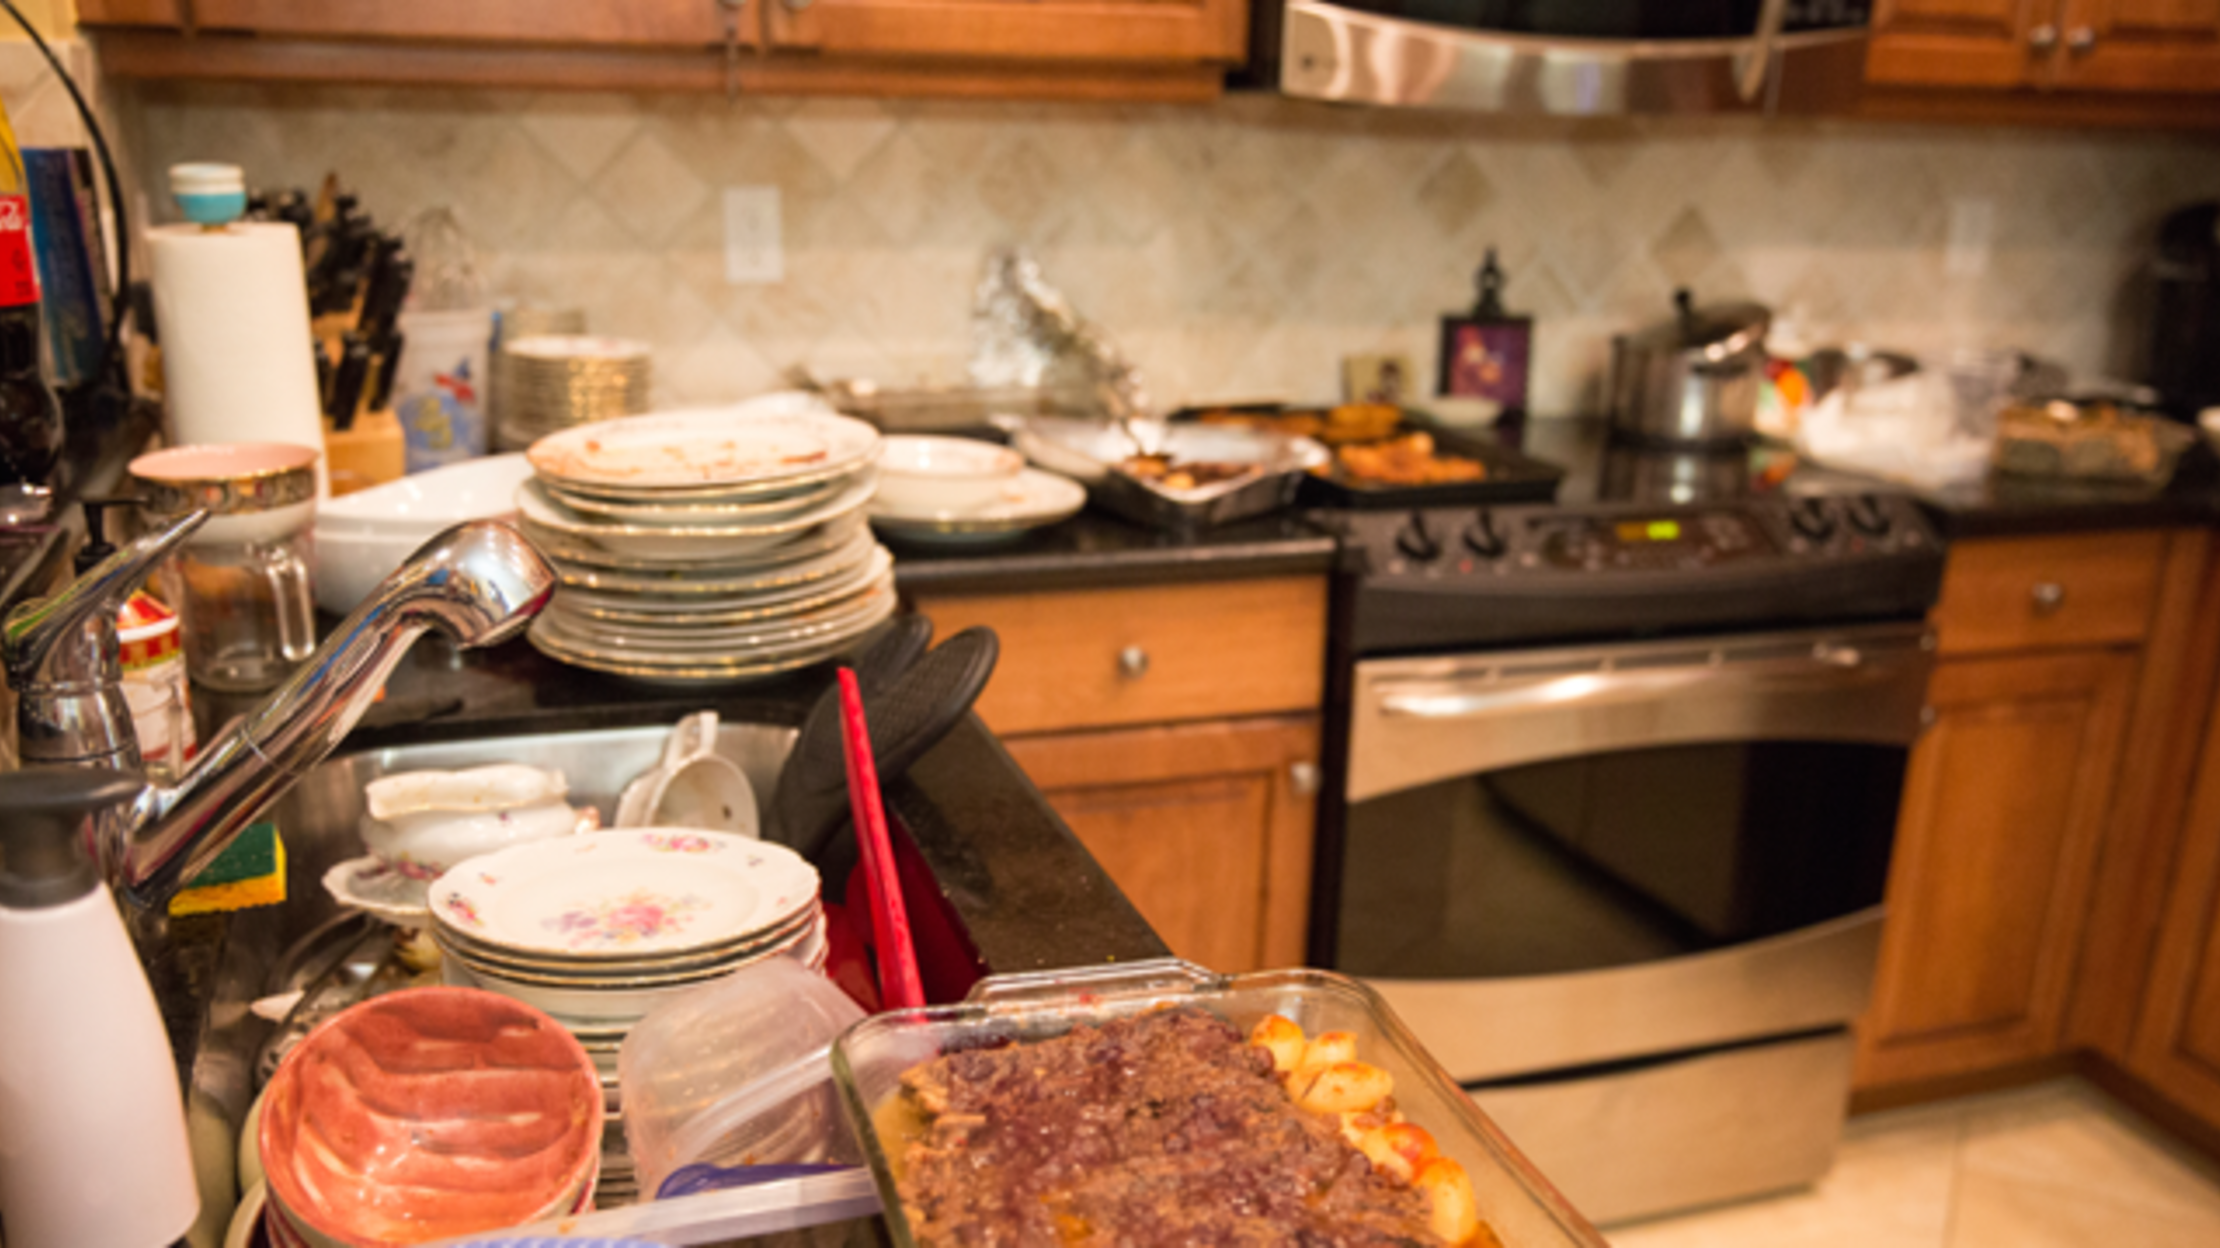 Study Says We Eat More When Our Kitchens Are Messy